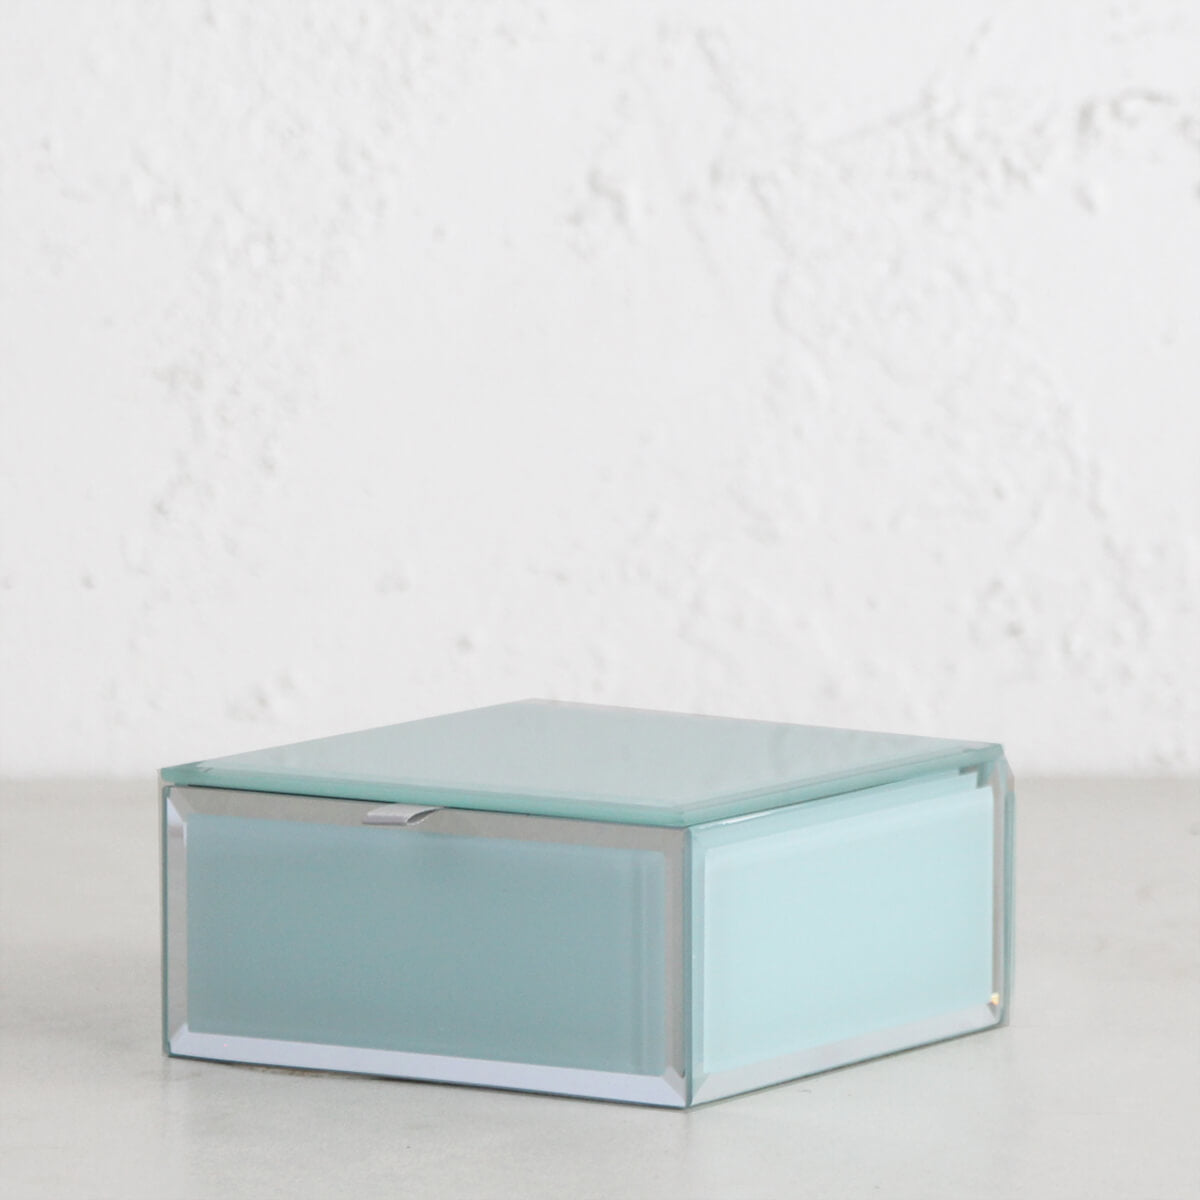 ONE SIX EIGHT LONDON  |  SARA GLASS JEWELLERY BOX  |  MINT BUNDLE